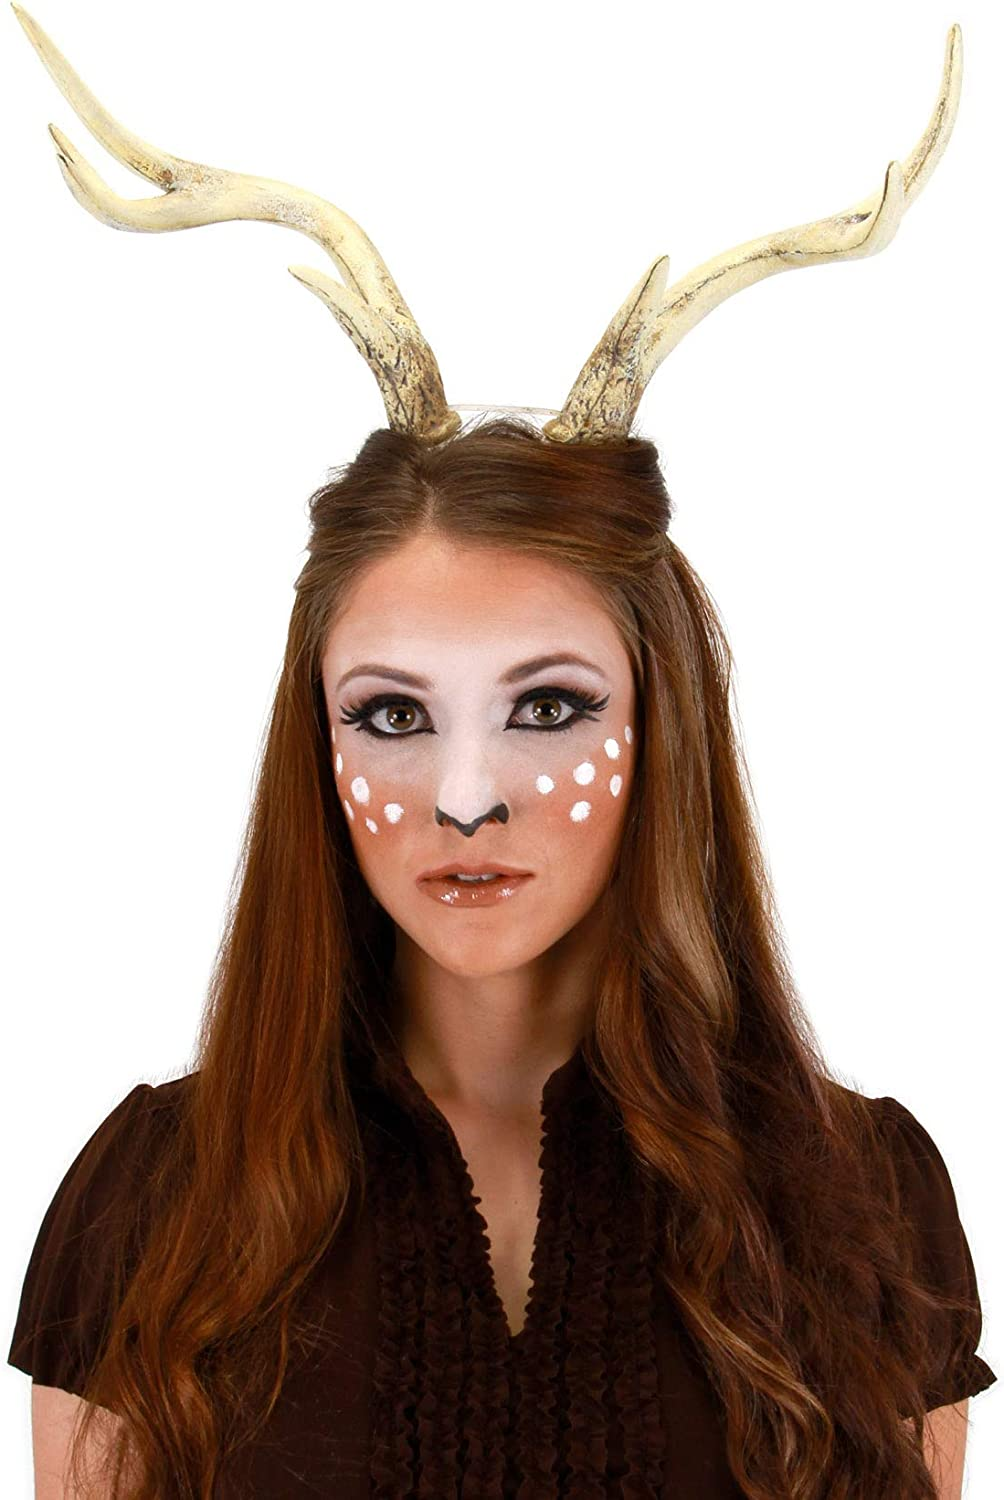 Amazon Com Deer Faun Cosplay Costume Antlers For Adults Women And Men Clothing